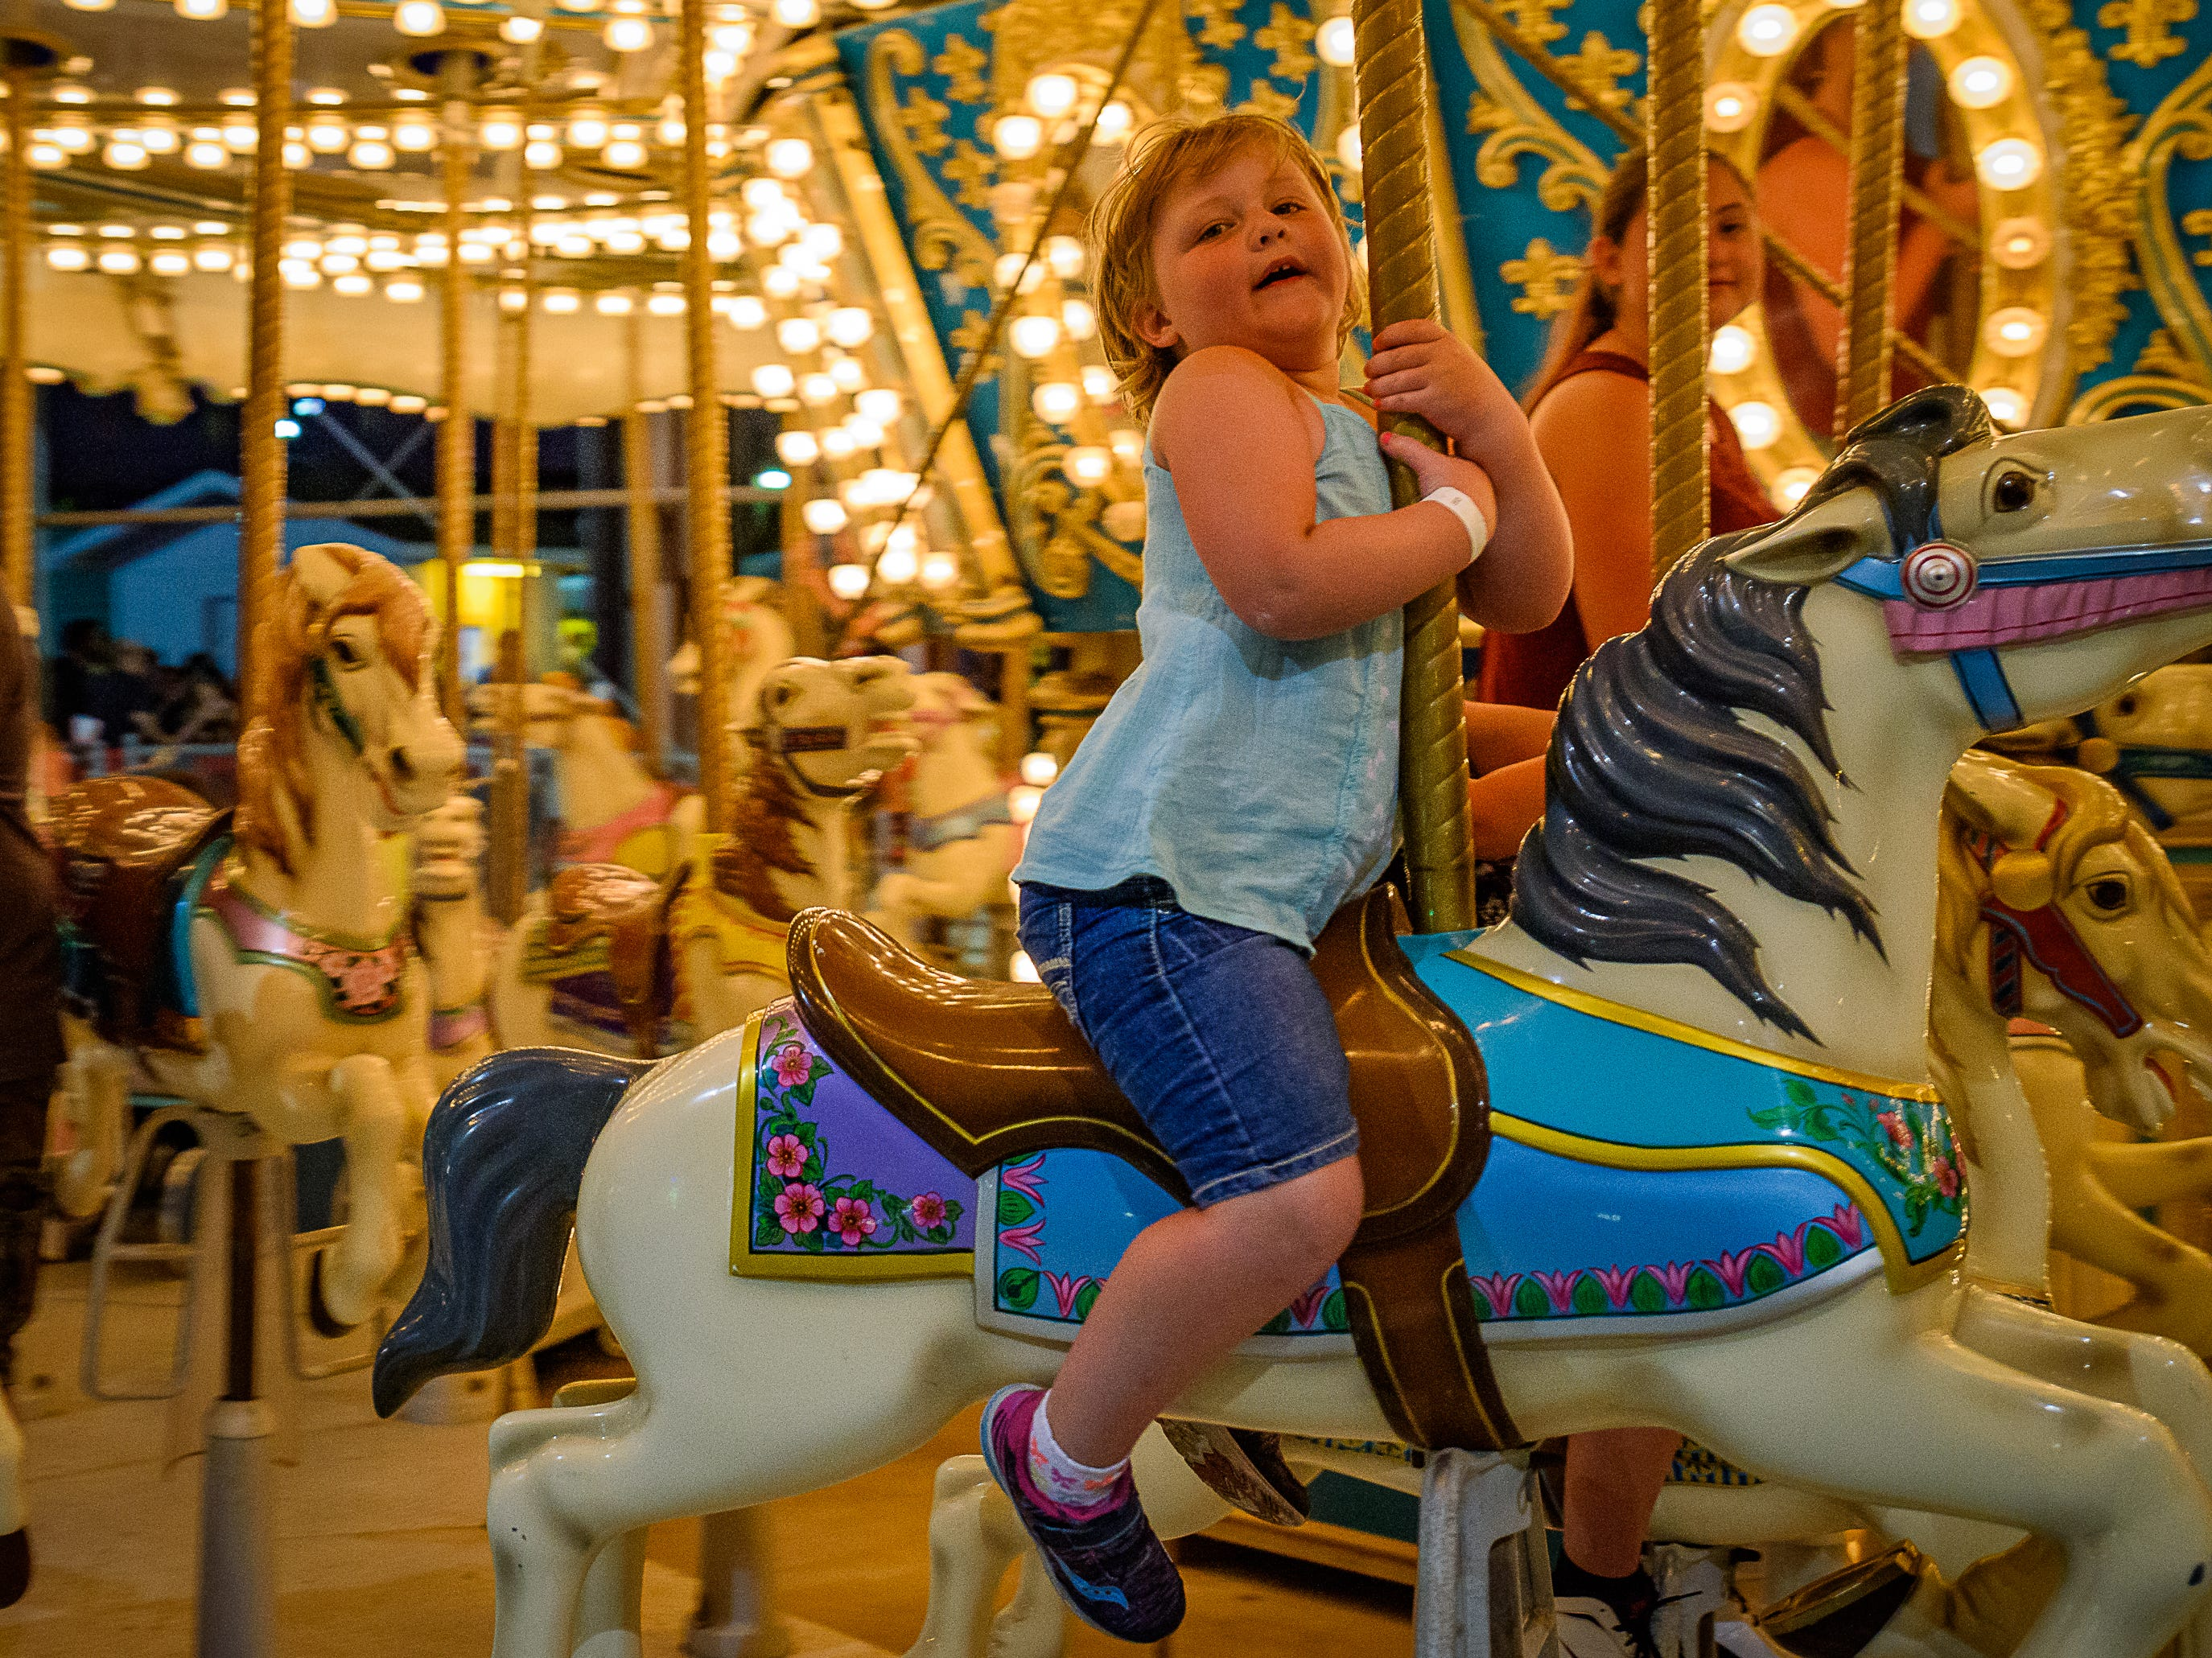 A young visitor to the fair enjoys the carousel at the Chincoteague Fireman's Carnival.